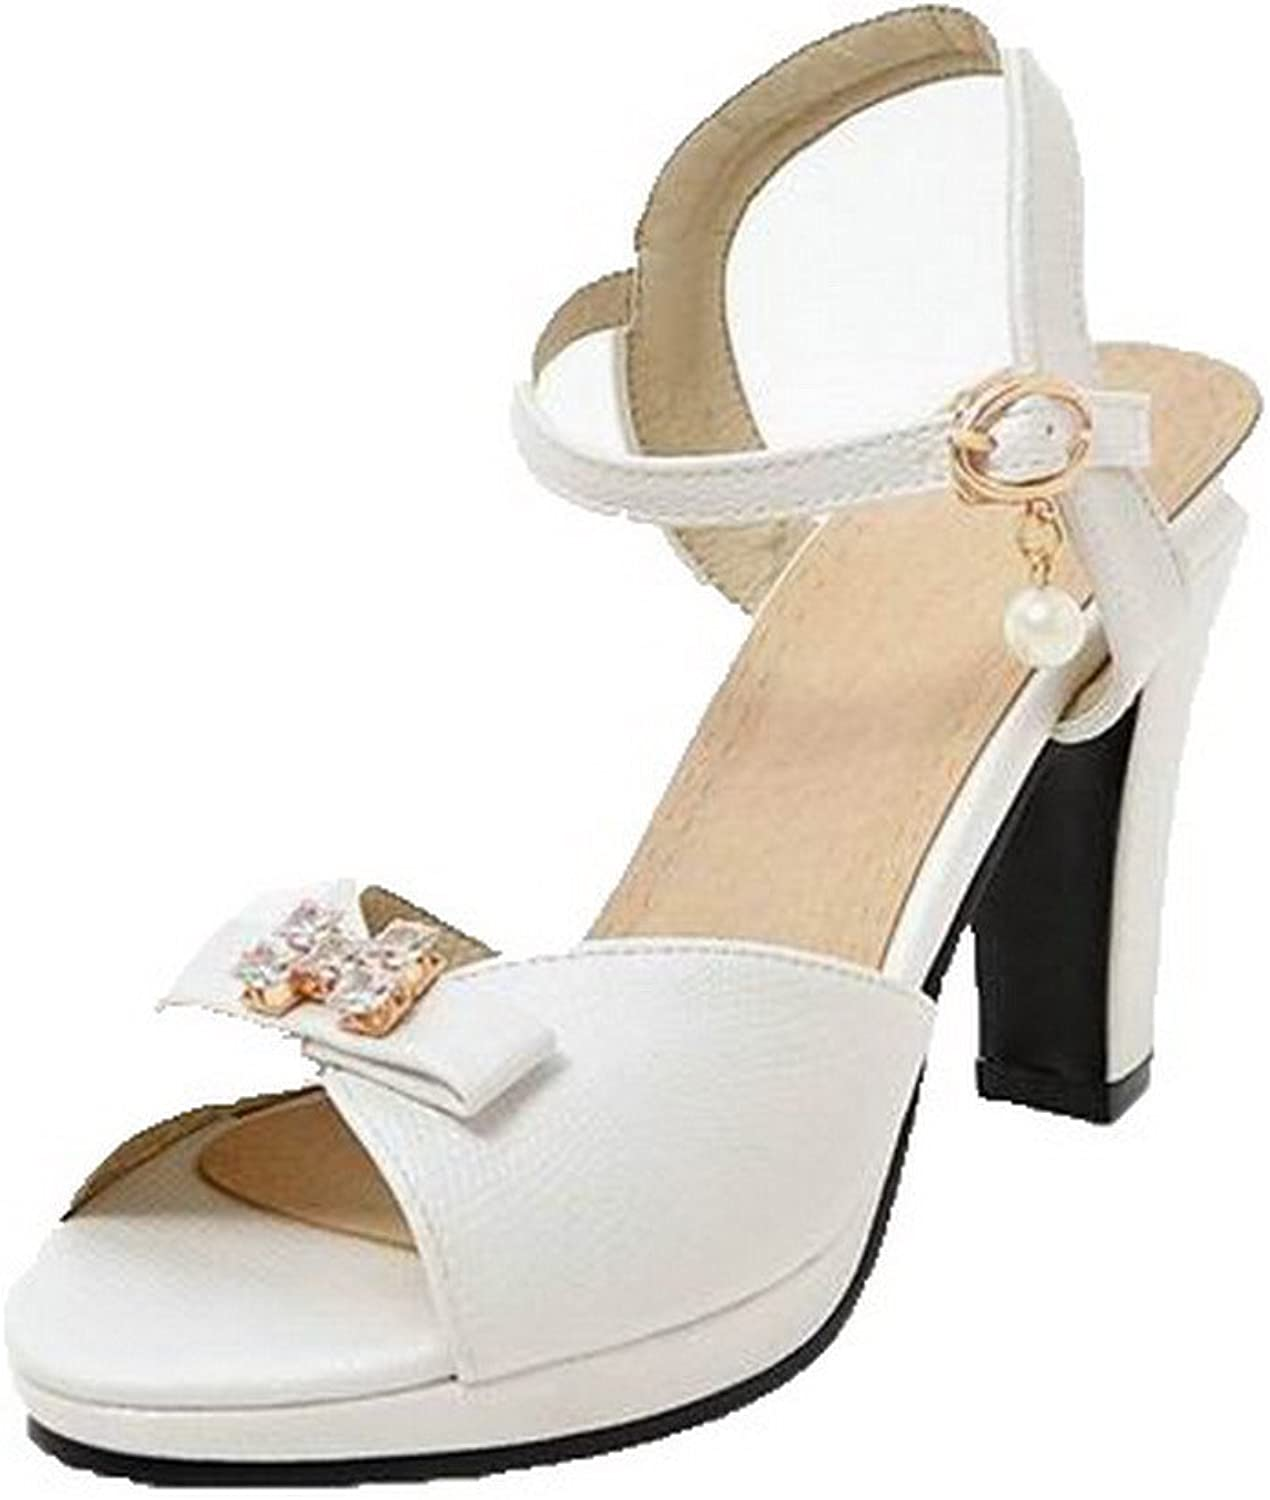 Weenmode Woherrar Pu Pu Pu Open -Toe High klackar Buckle Solid Sandals, AMGLX009579  mode varumärken